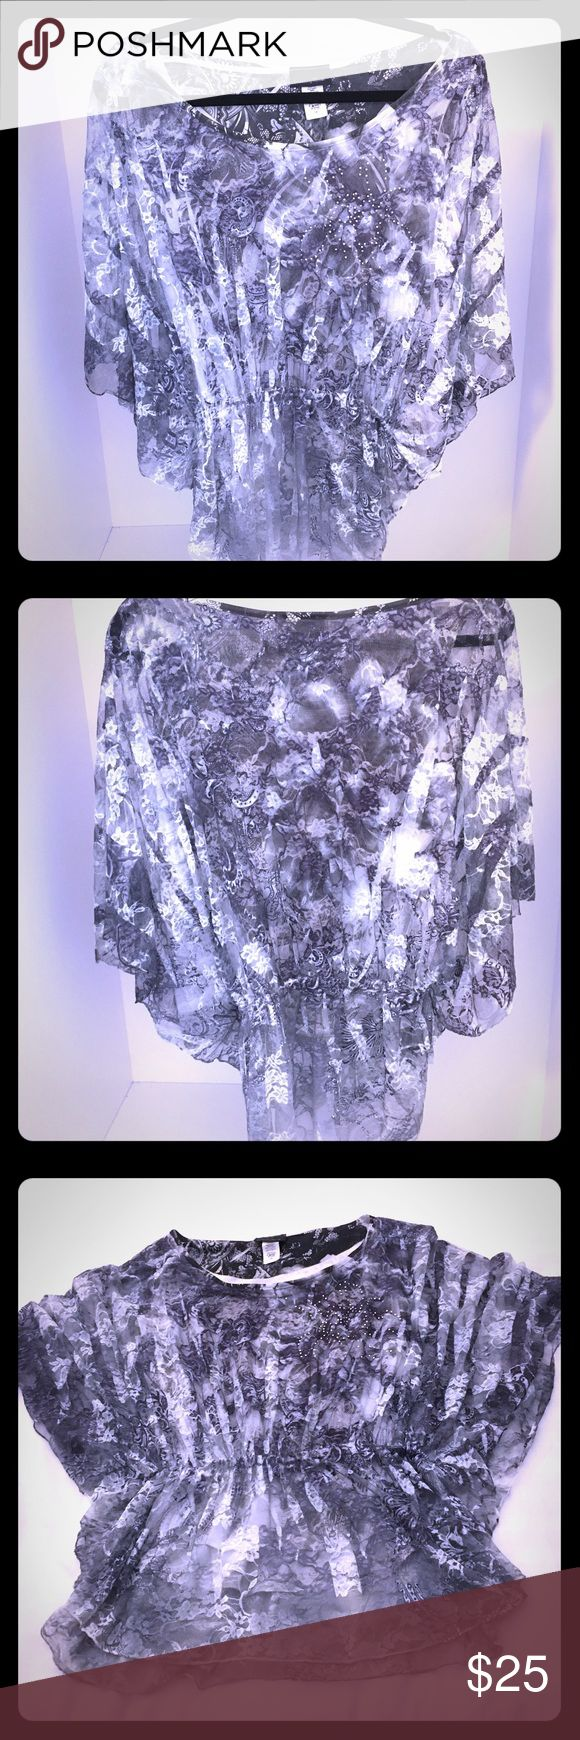 """Fifty Shades of Gray This beautiful Brittany Black """"Fifty Shades of Gray"""" floral lace batwing top is embellished with rhinestones on the front. It is white and black and has many different shades of gray. 92% Nylon 8% spandex. Has a 100% Polyester white and gray floral liner tank top underneath that you can see in pictures 5, 6 & 7. Size 1X. NWOT. Never worn. No flaws with this top!!! Brittany Black Tops Blouses"""